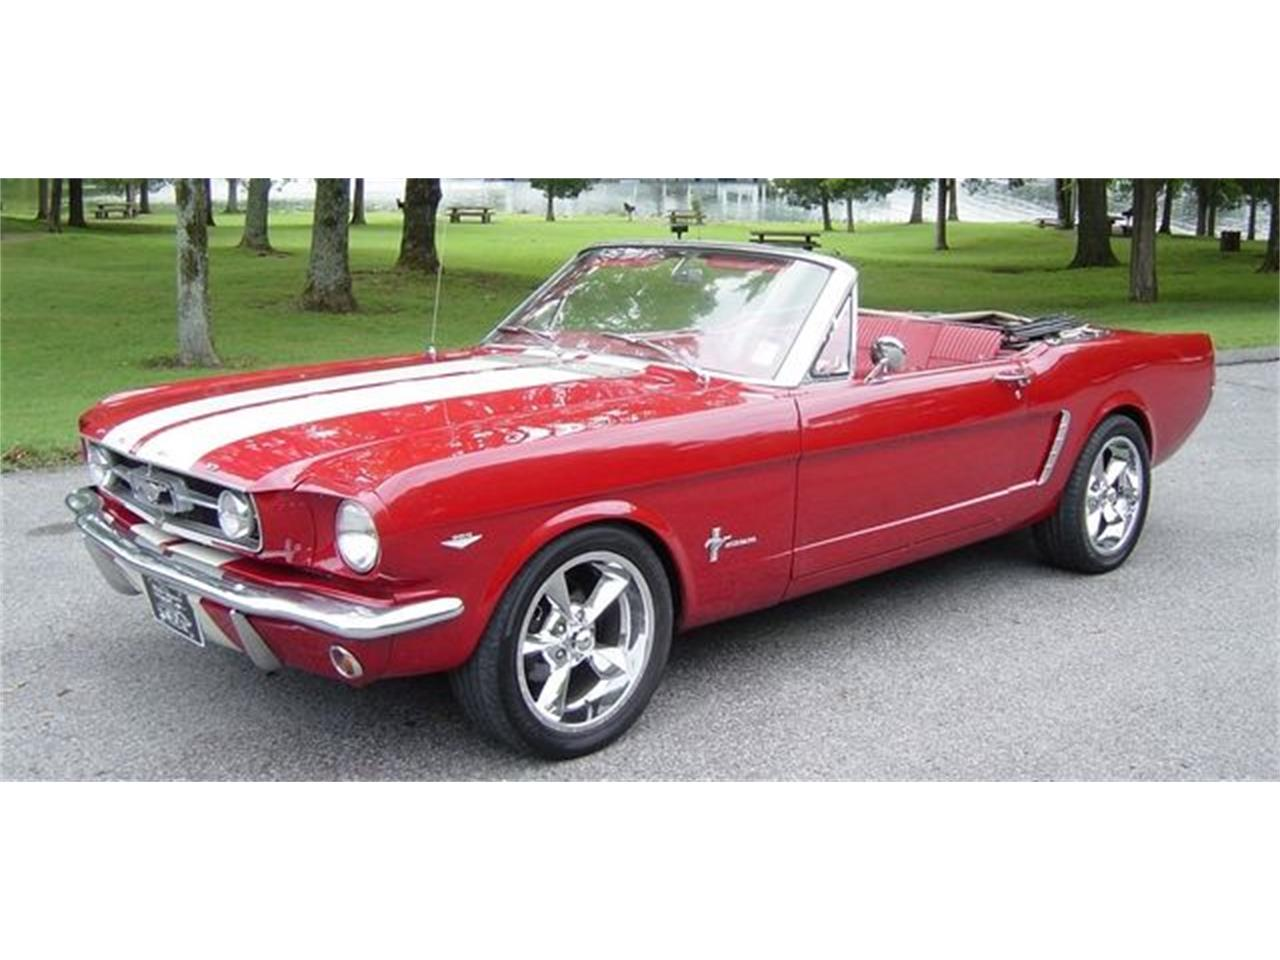 Large Picture of 1965 Mustang located in Tennessee - $25,900.00 - QUNC